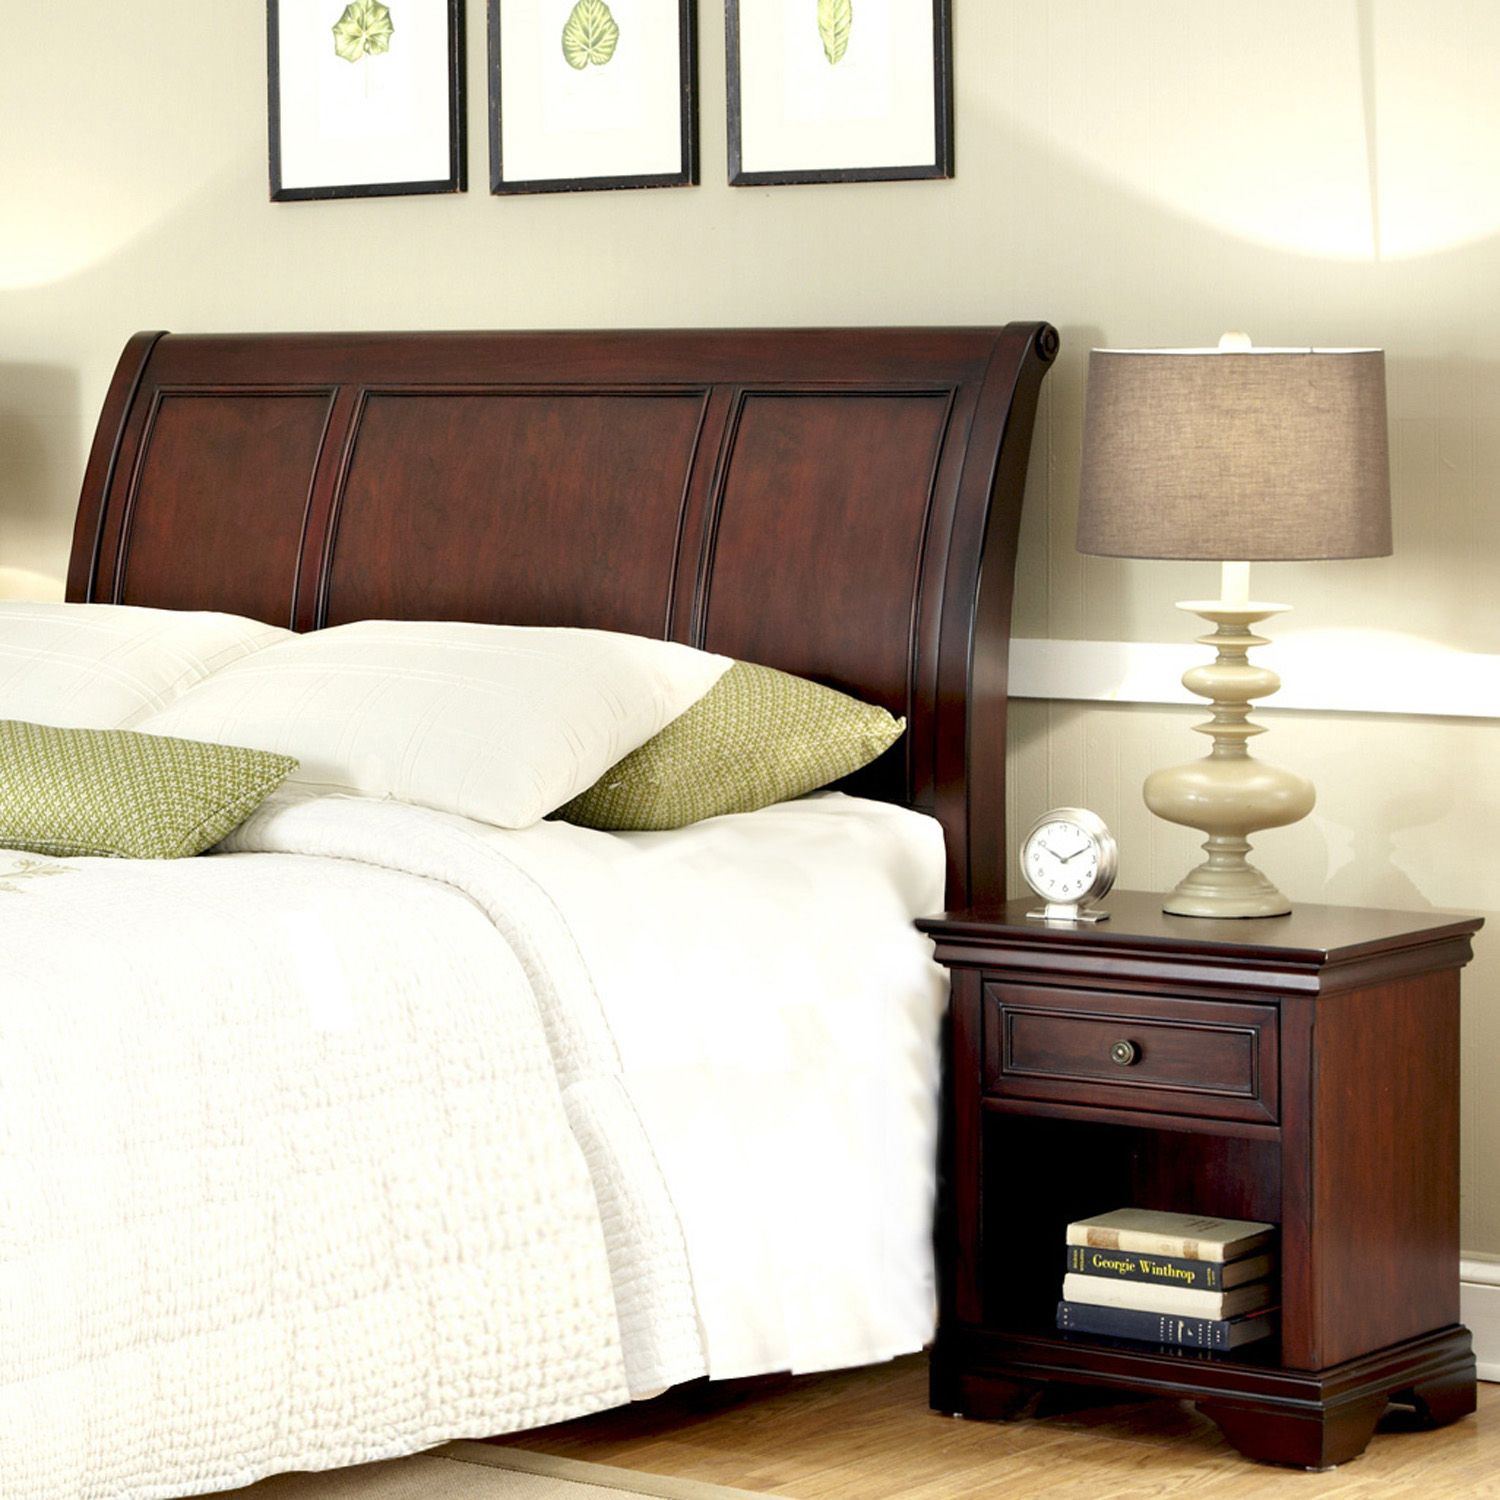 Cool Lafayette pc Queen Headboard u Nightstand Set